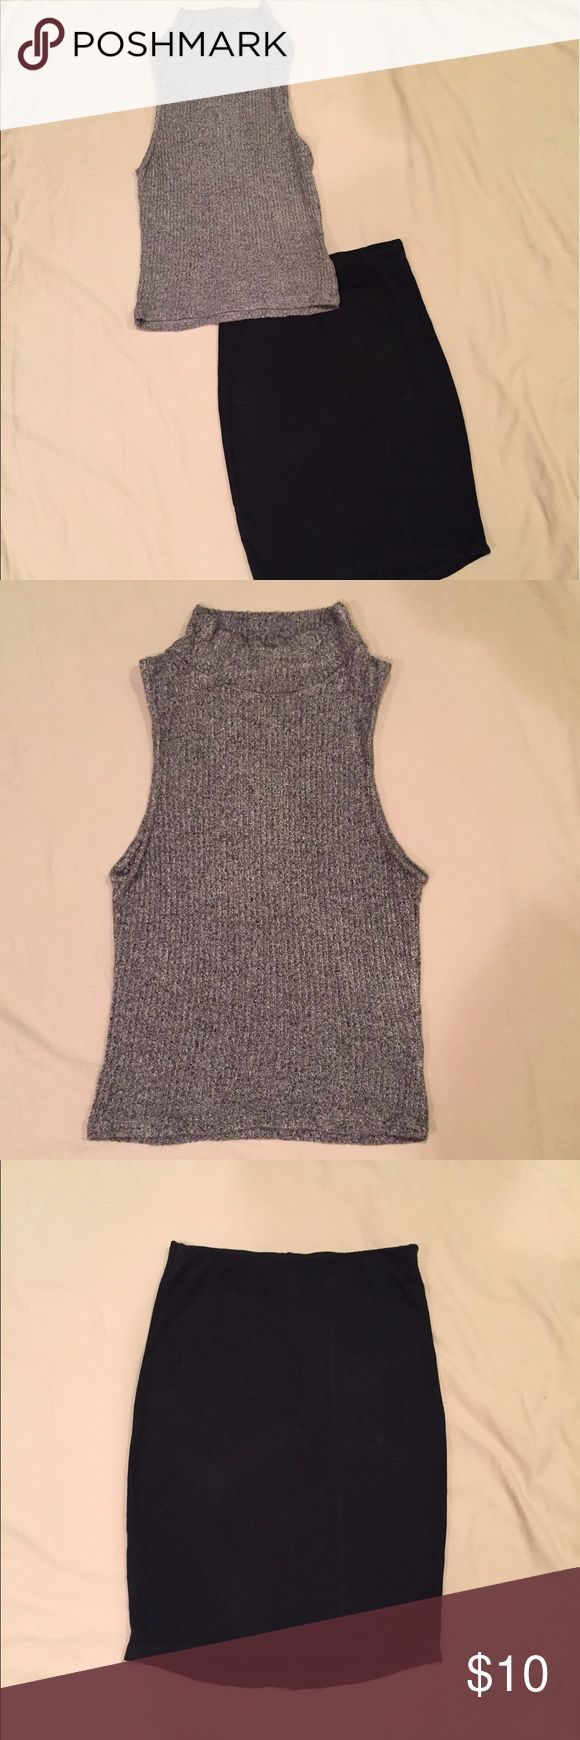 Brandy Melville Knit top and Skirt Beautiful gray Knit sleeveless top and tight black skirt! Love these two together. Can sell separately but prefer to sell together. Both in great condition! Brandy Melville Other